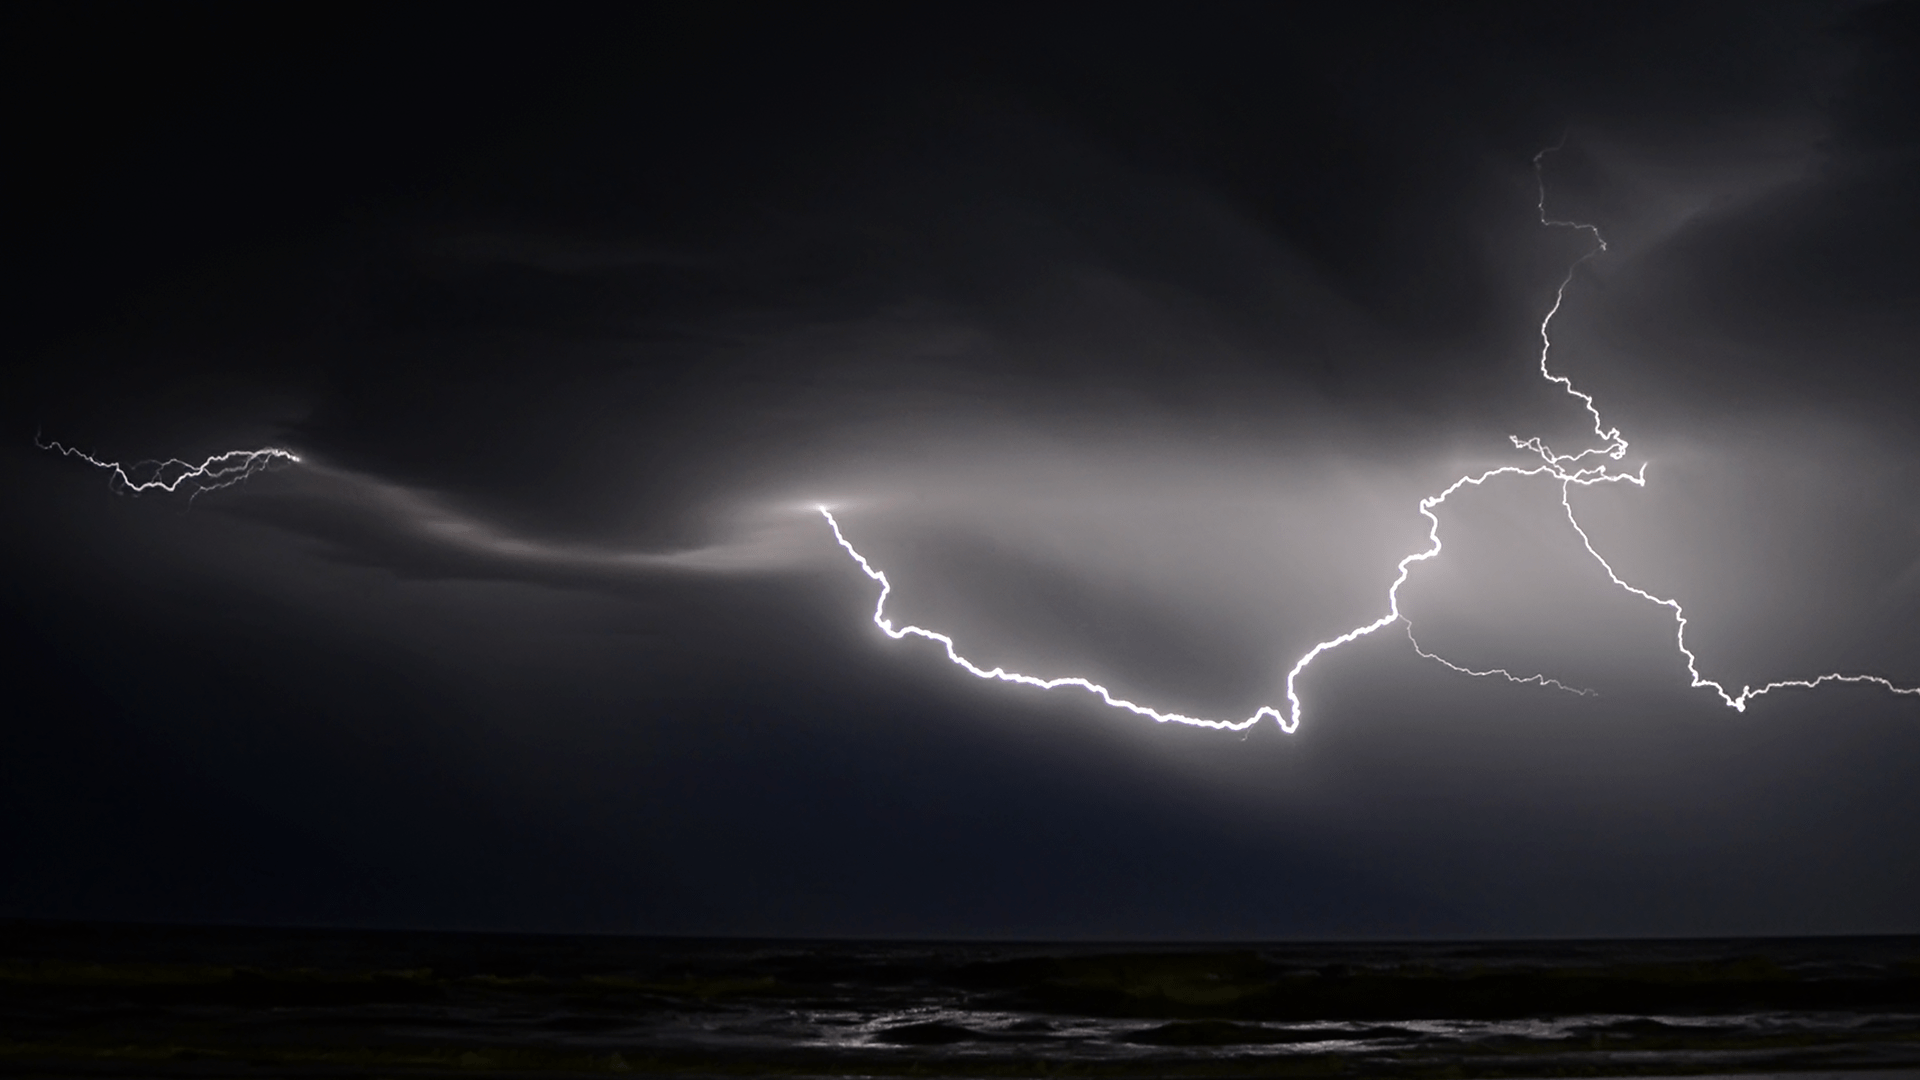 Best Hd Wallpapers For Mobile Screen 250 Engaging Lightning Storm Photos 183 Pexels 183 Free Stock